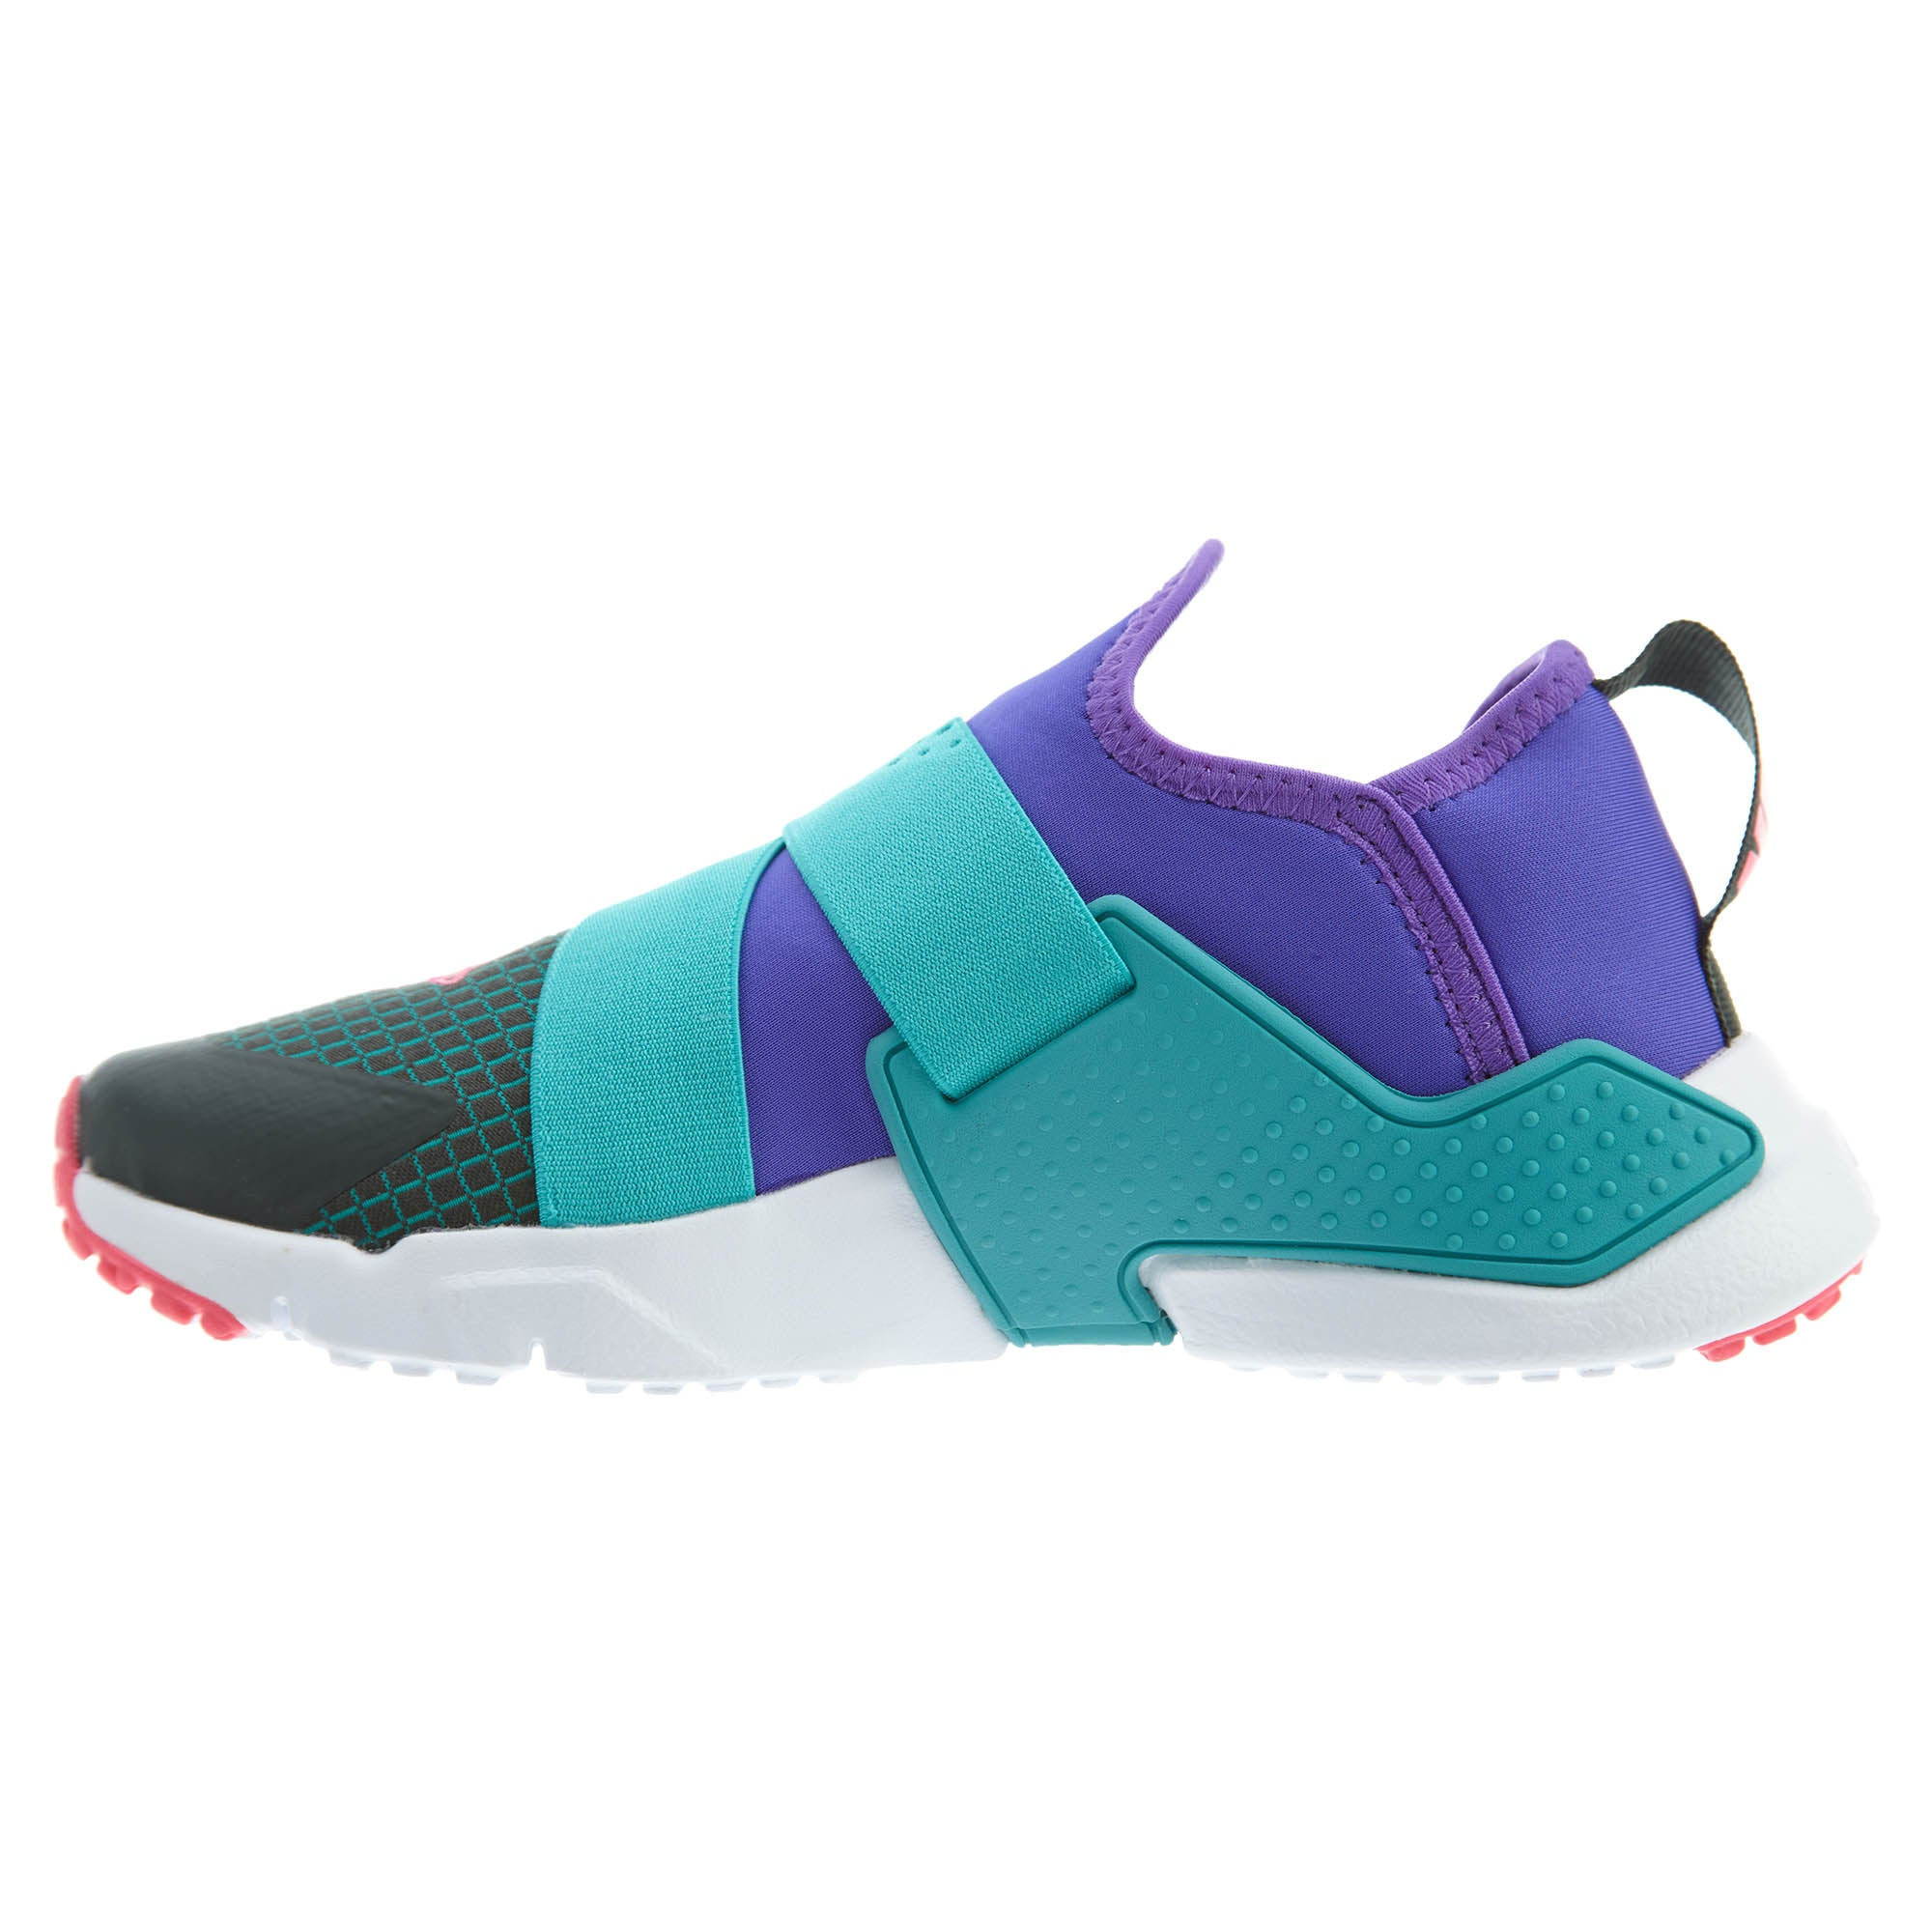 Nike Huarache Extreme Now Big Kids Style : Bq7568-500